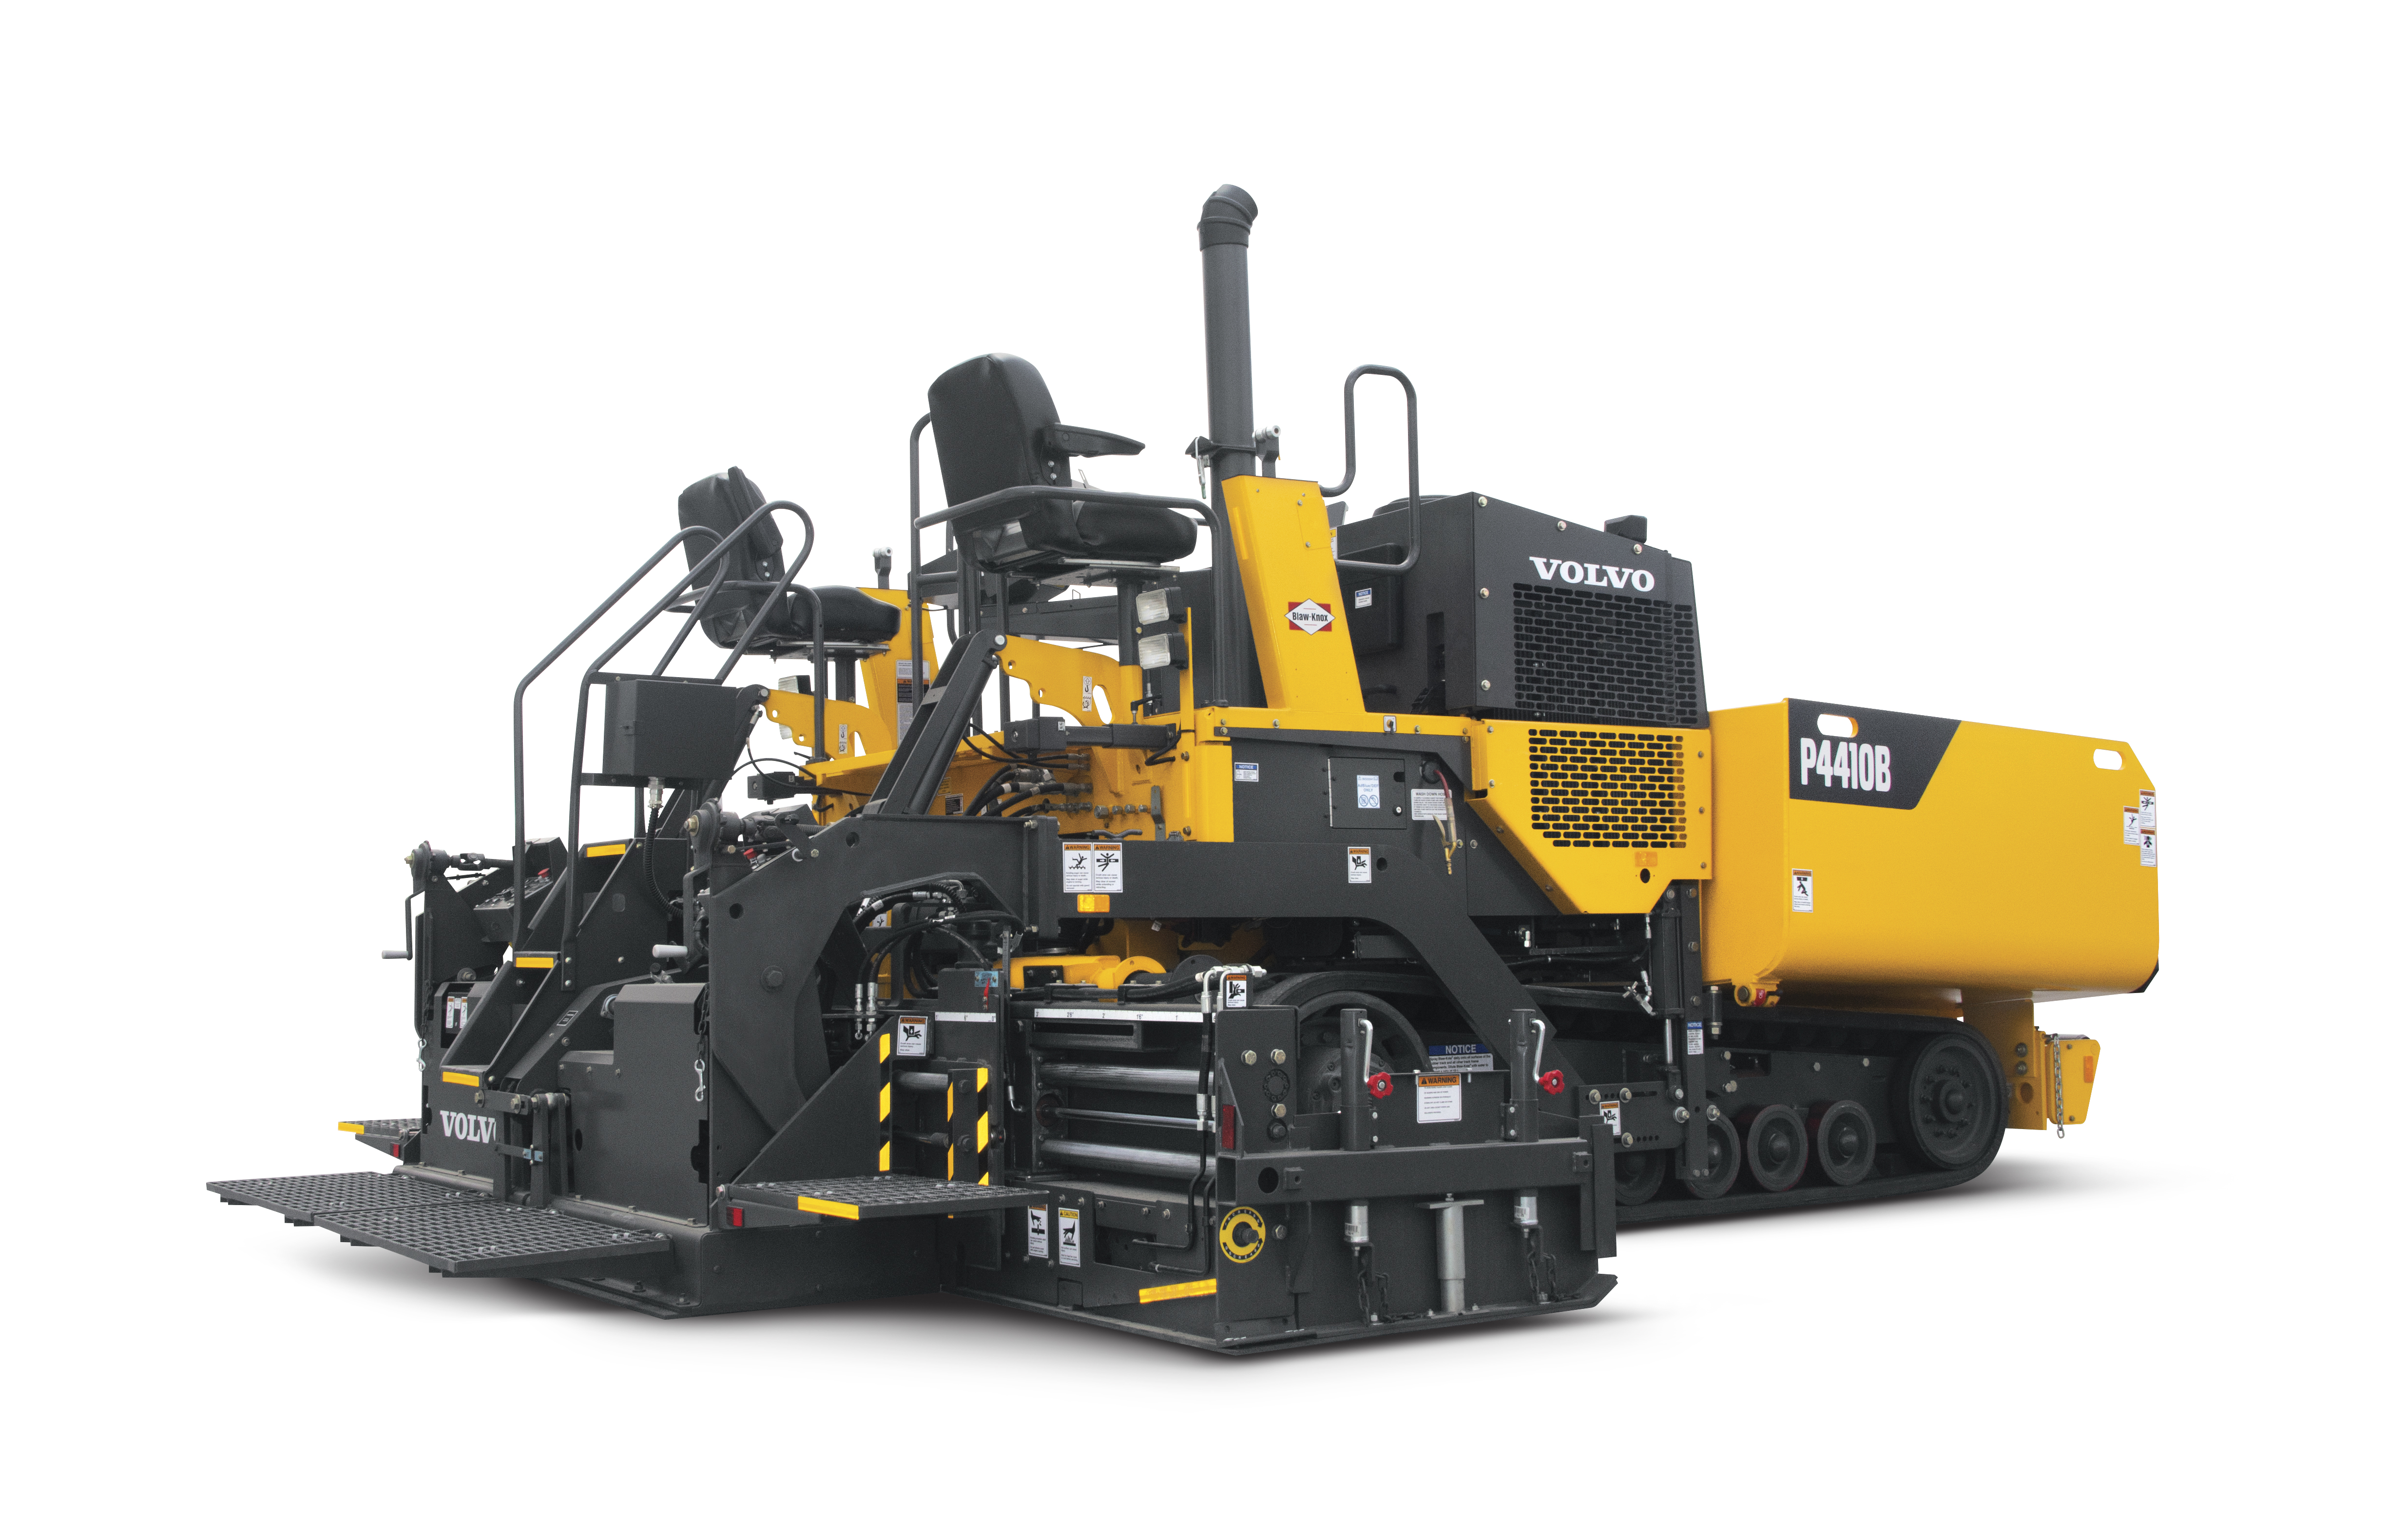 The Ultimat 16 screed of Volvo's new P4410B can hydraulically extend to double the machine's base width to a full 16 feet.